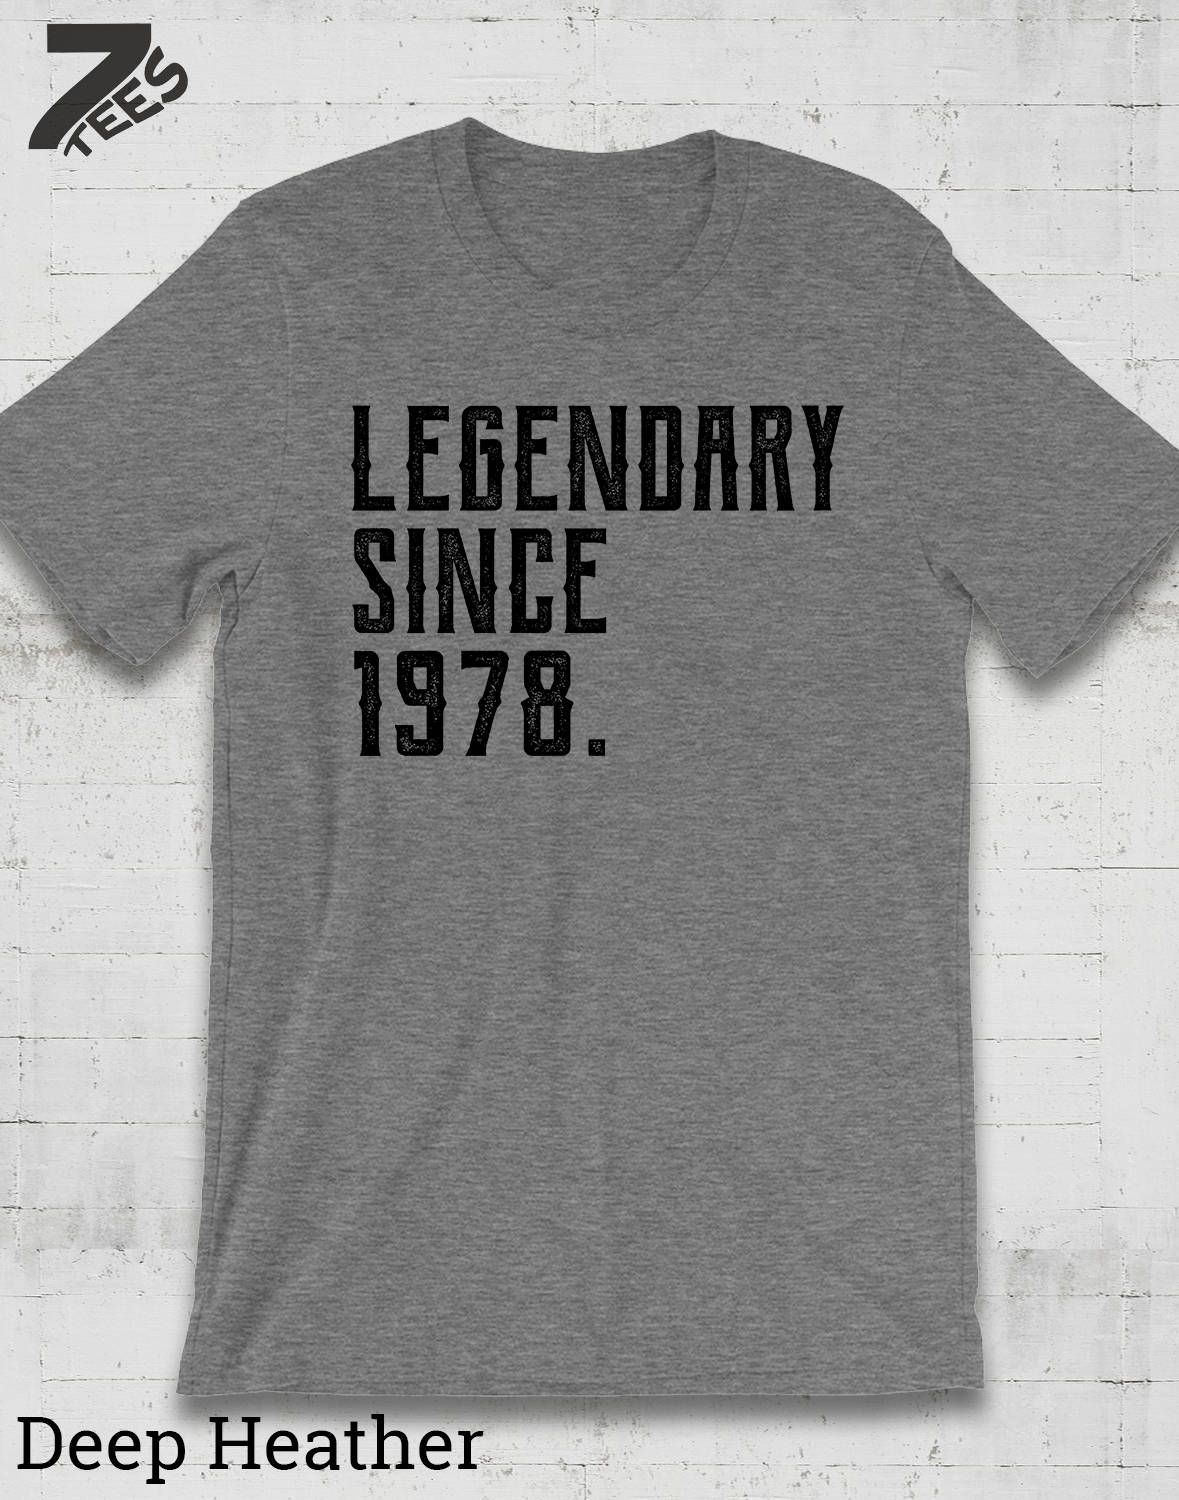 Perfect For That Friend Or Family Member Is Nothing Short Of Legendary 40th Birthday Gifts Women And Men Shirt Gift